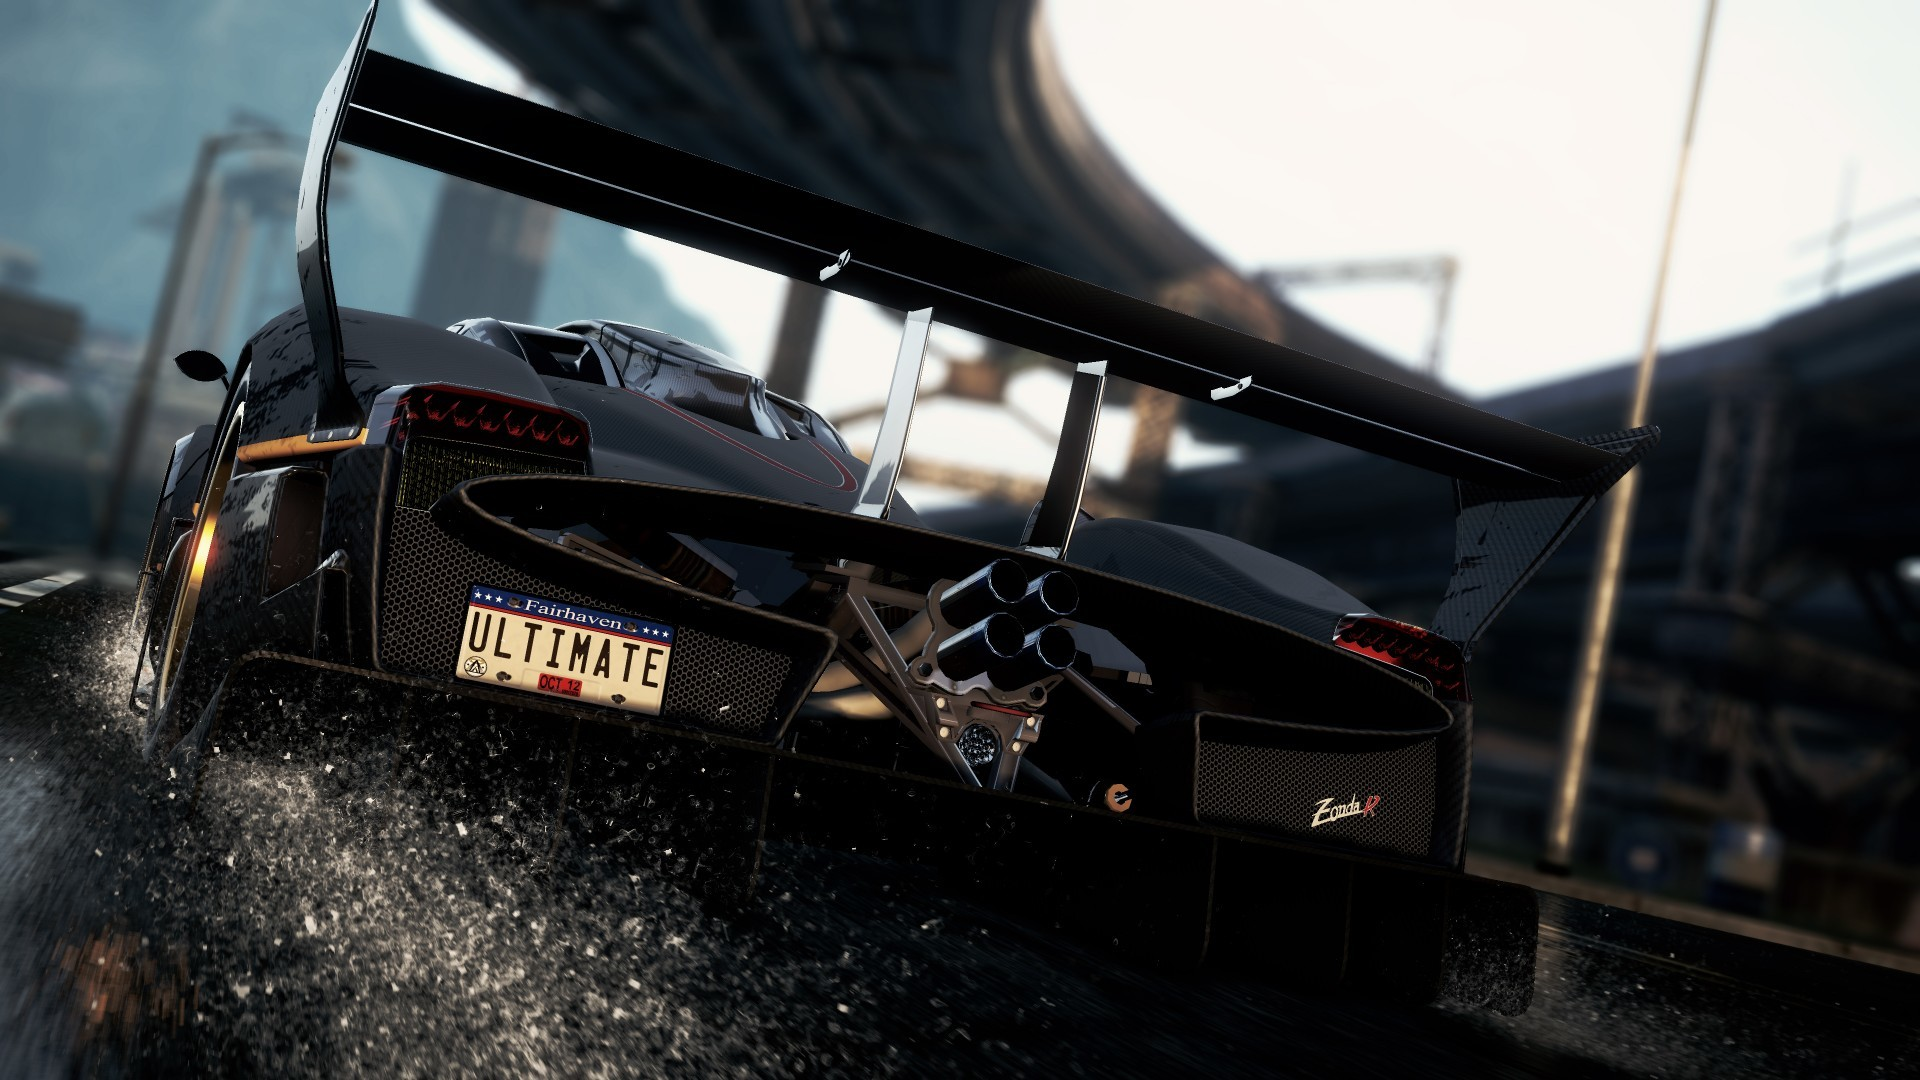 1920x1080 Pagani Zonda R Need for Speed Most Wanted 1080p